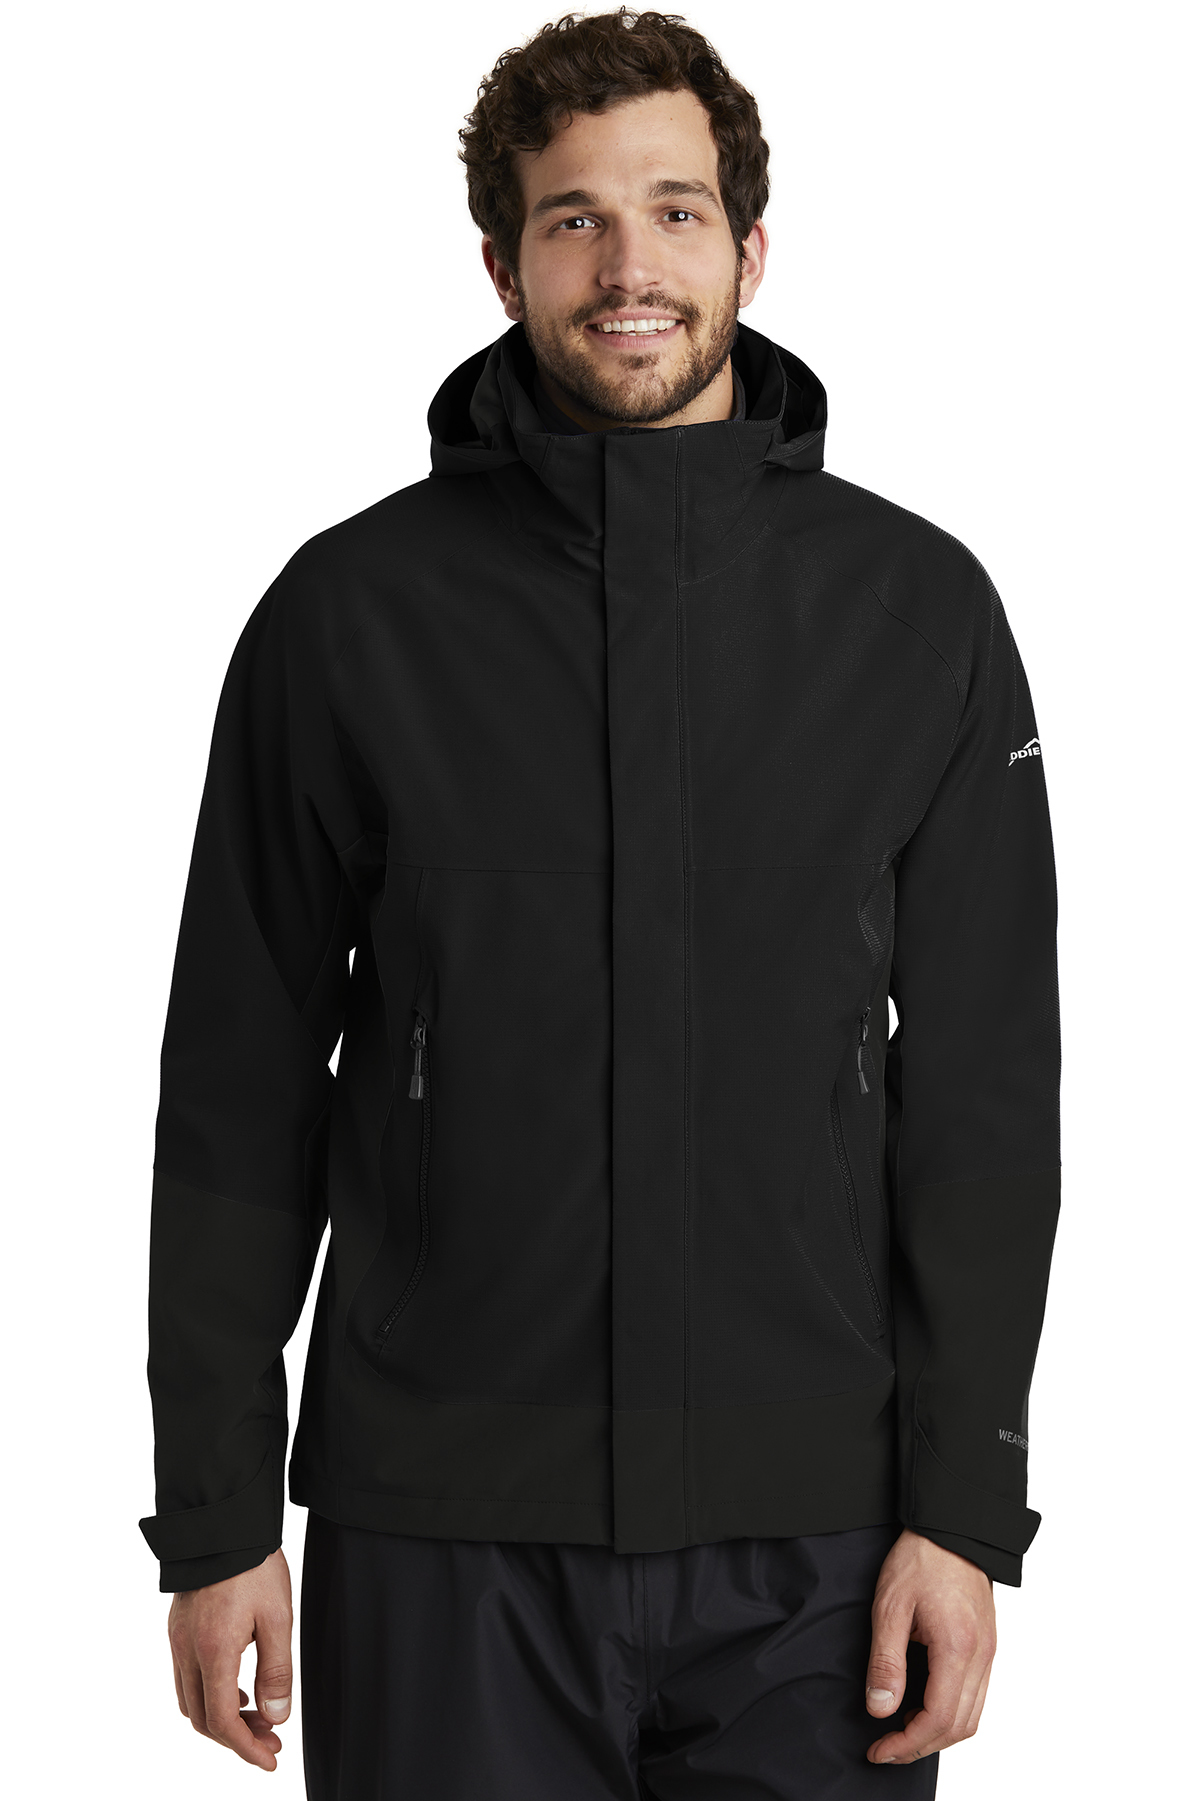 Eddie Bauer EB558 - Men's WeatherEdge Jacket